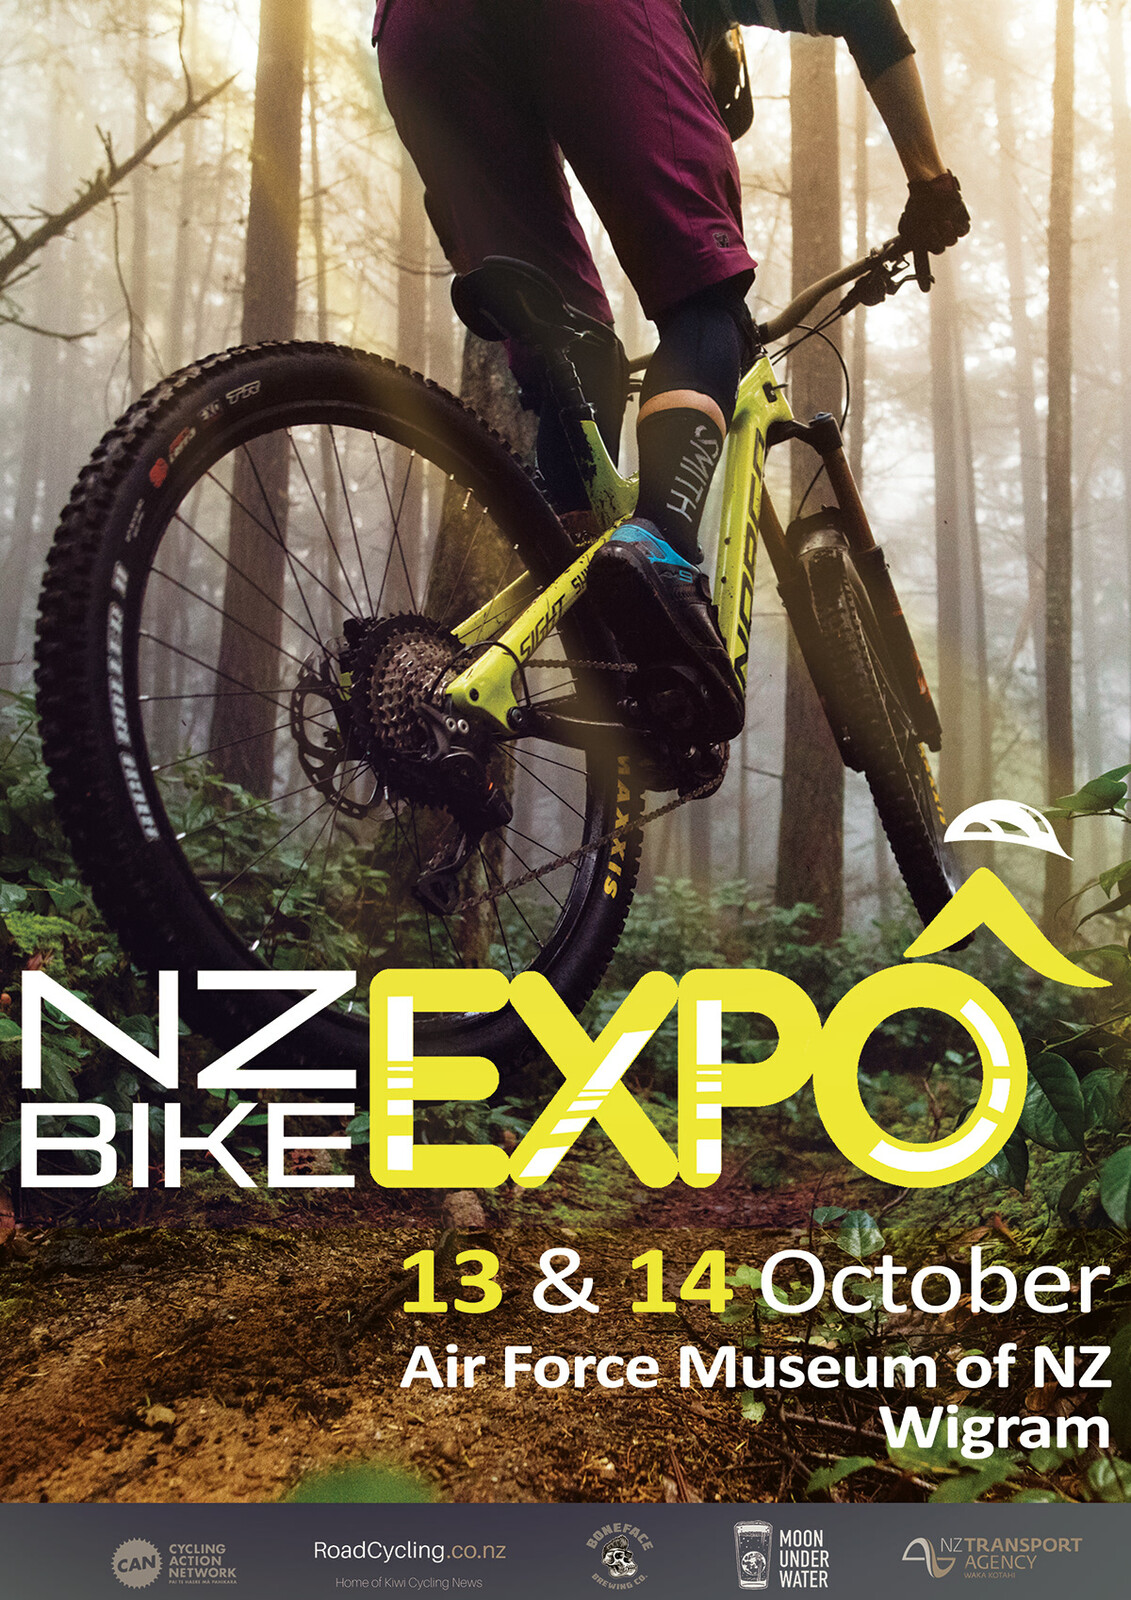 NZ Bike Expo Poster 1